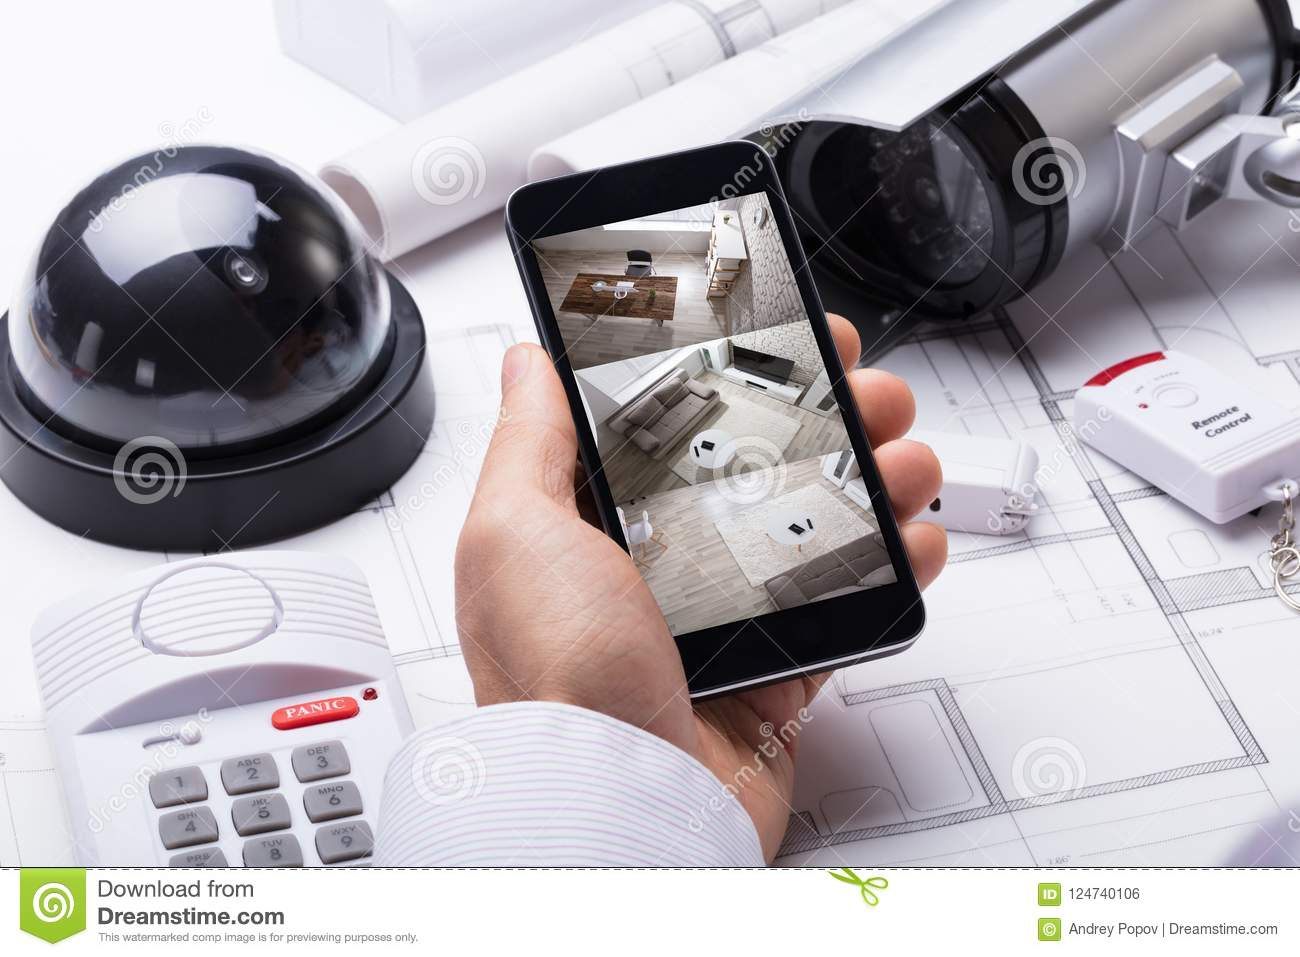 Person Hand Using Home Security system på mobilephonen